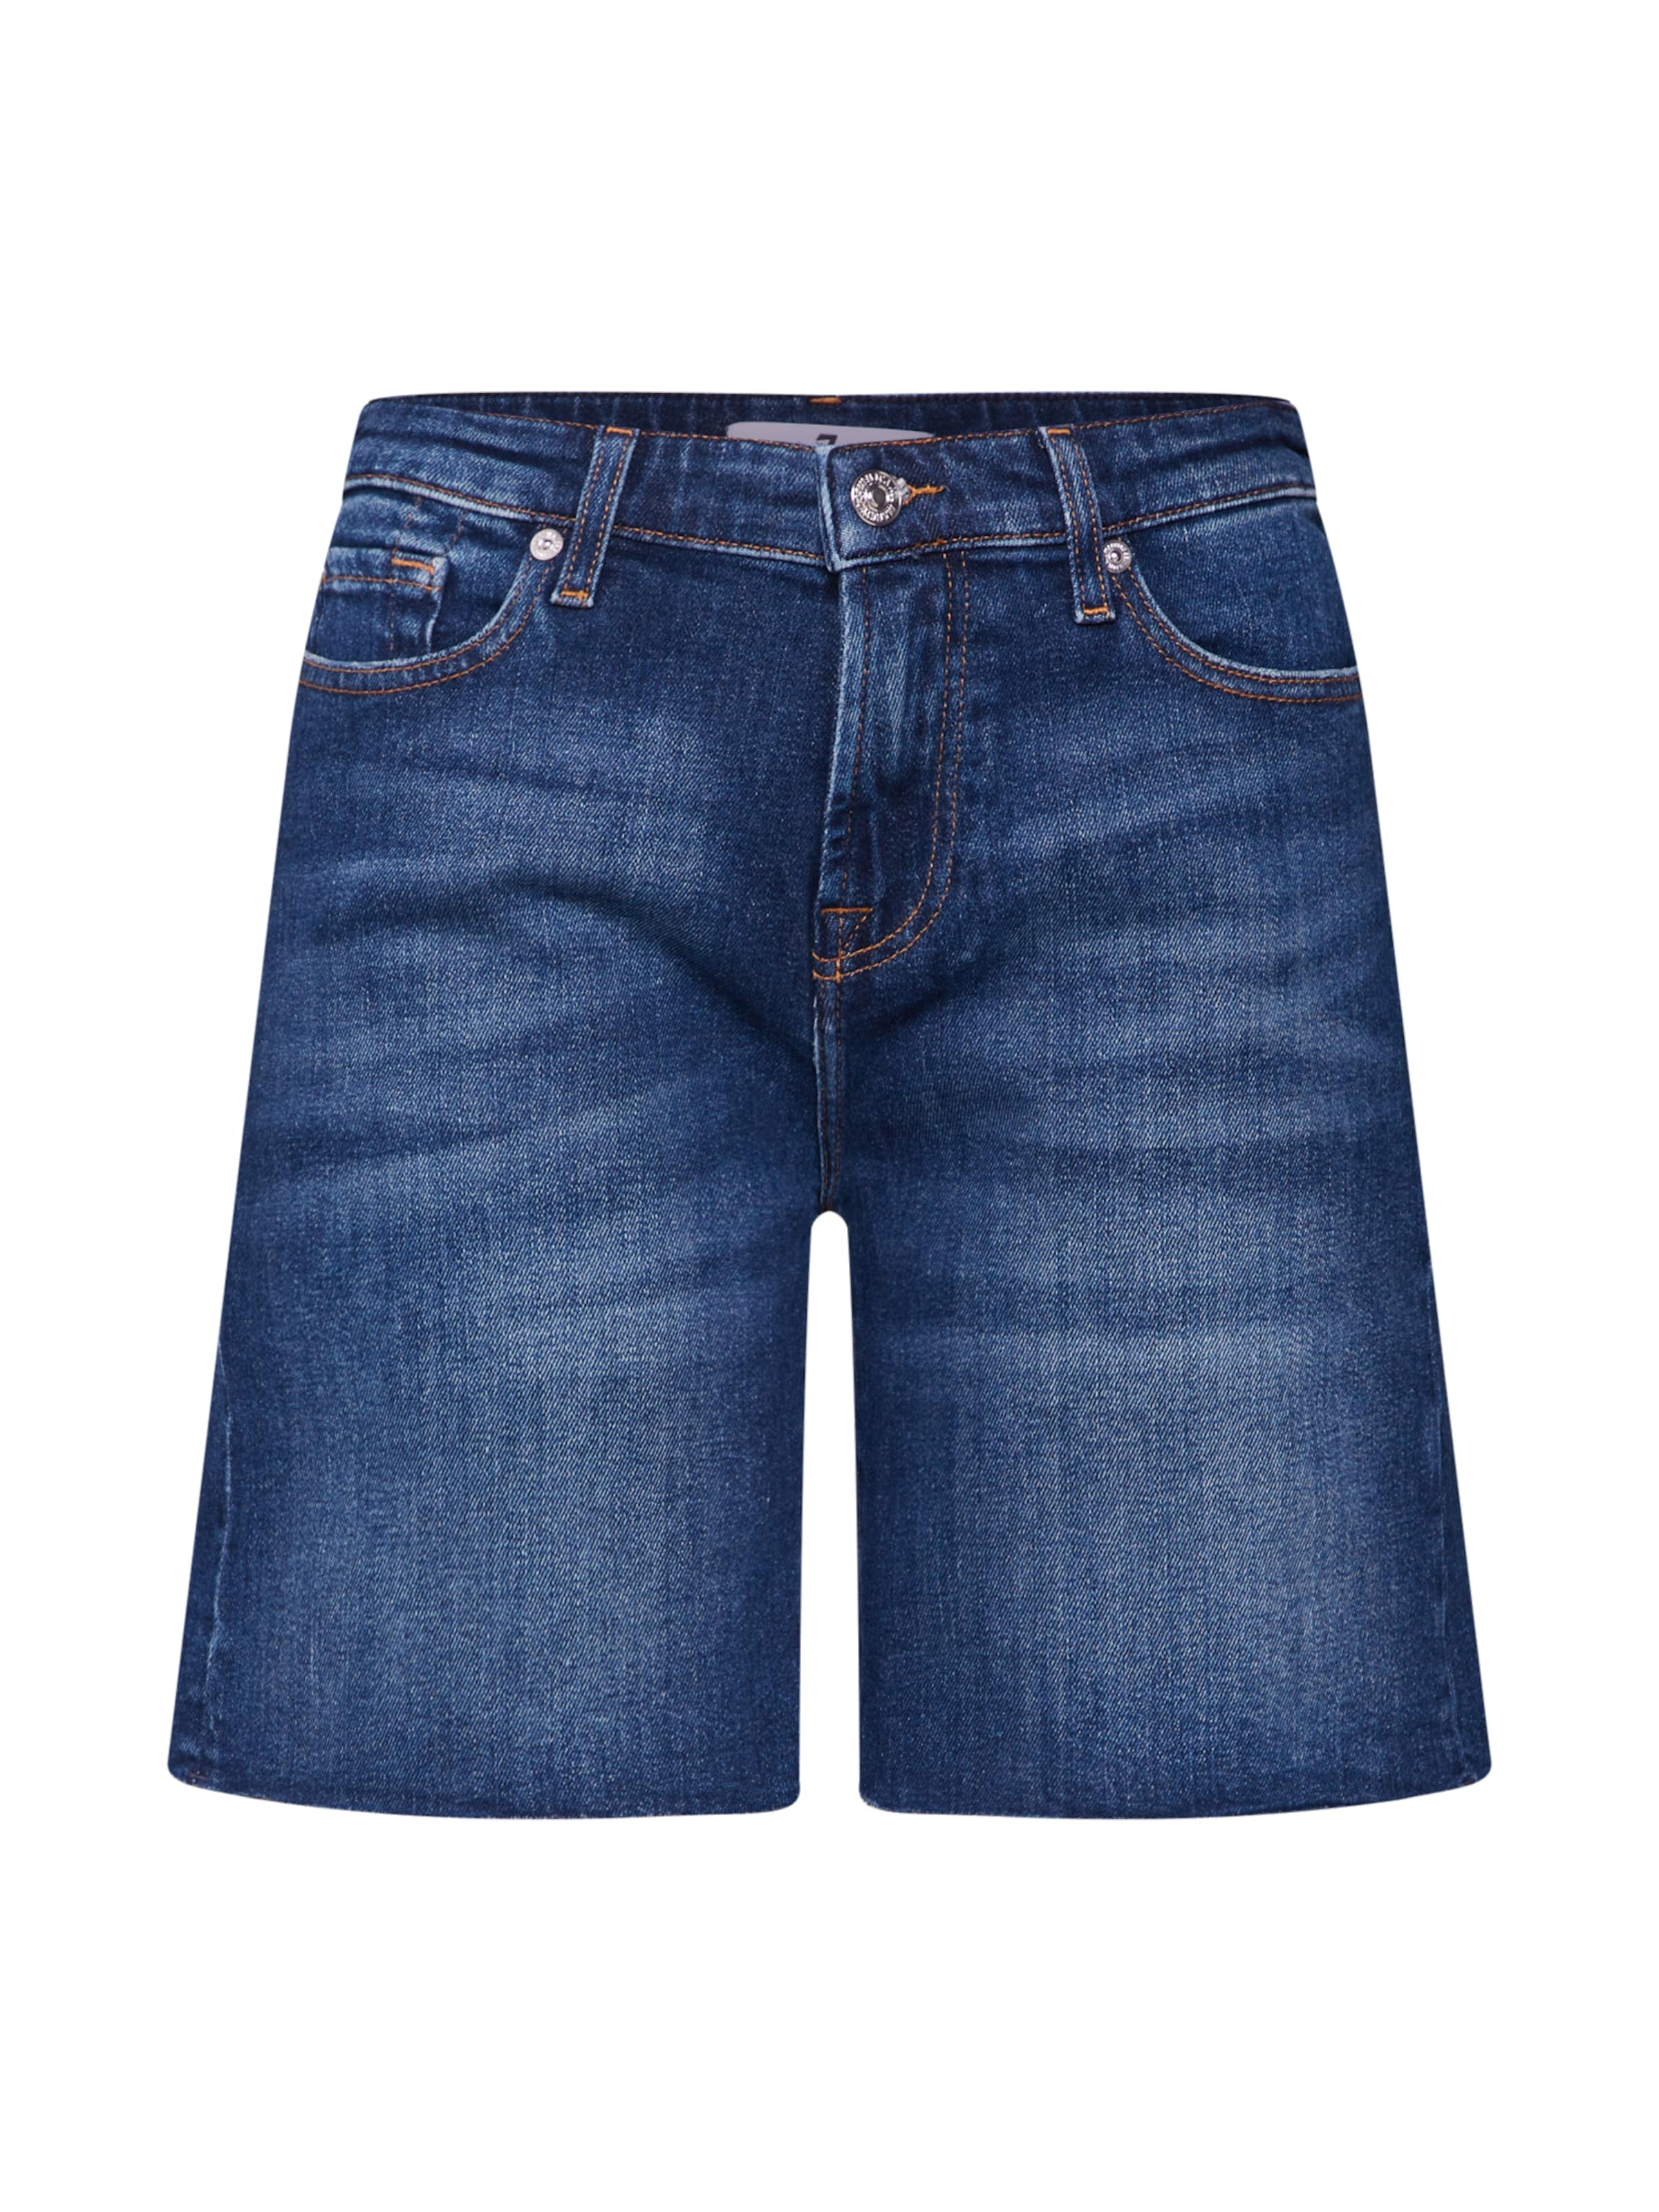 Mankind 7 In Denim Jeans All Blue For 'boy' W2IH9ED